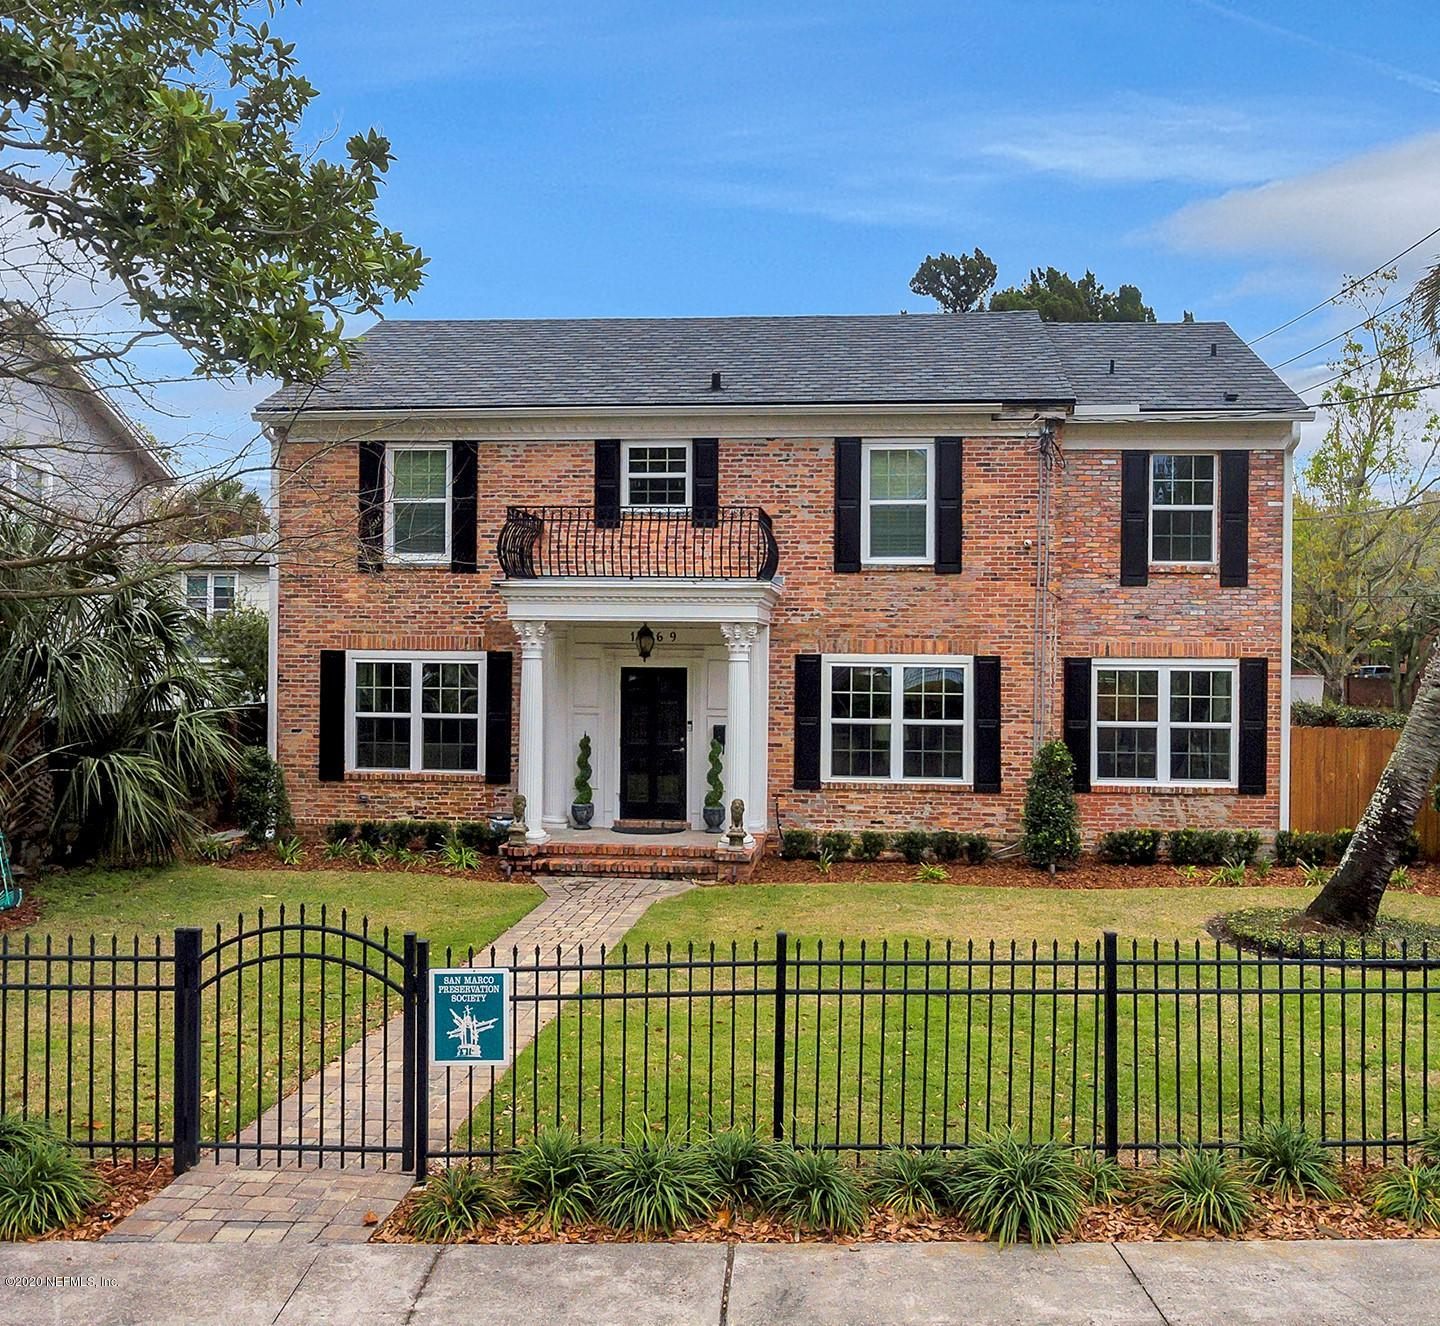 1469 LE BARON, JACKSONVILLE, FLORIDA 32207, 4 Bedrooms Bedrooms, ,4 BathroomsBathrooms,Residential,For sale,LE BARON,1039022